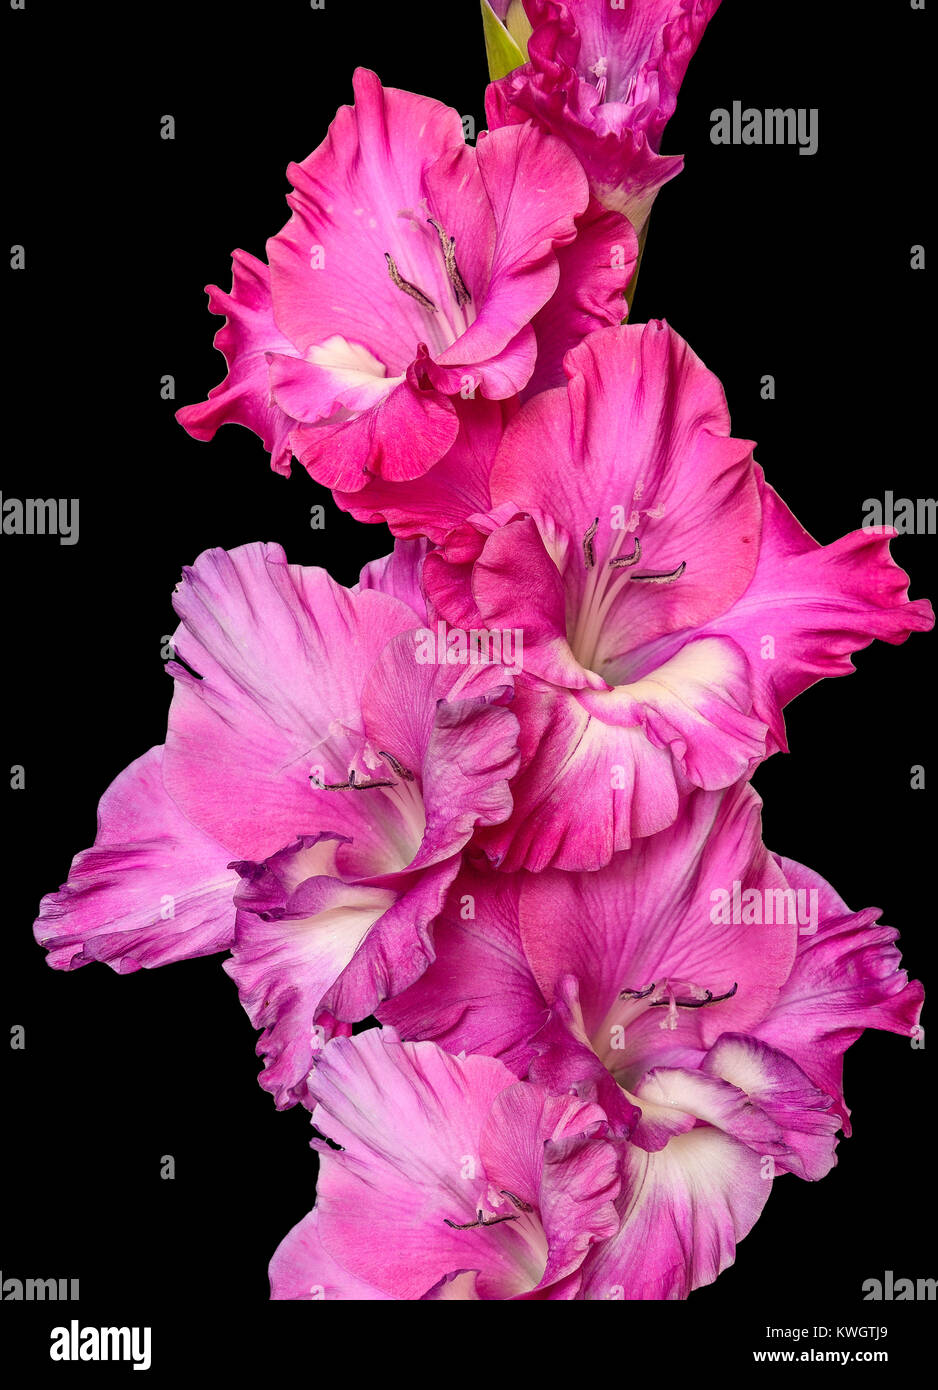 Single gentle pink gladiolus flower close up, isolated on a black background - Stock Image